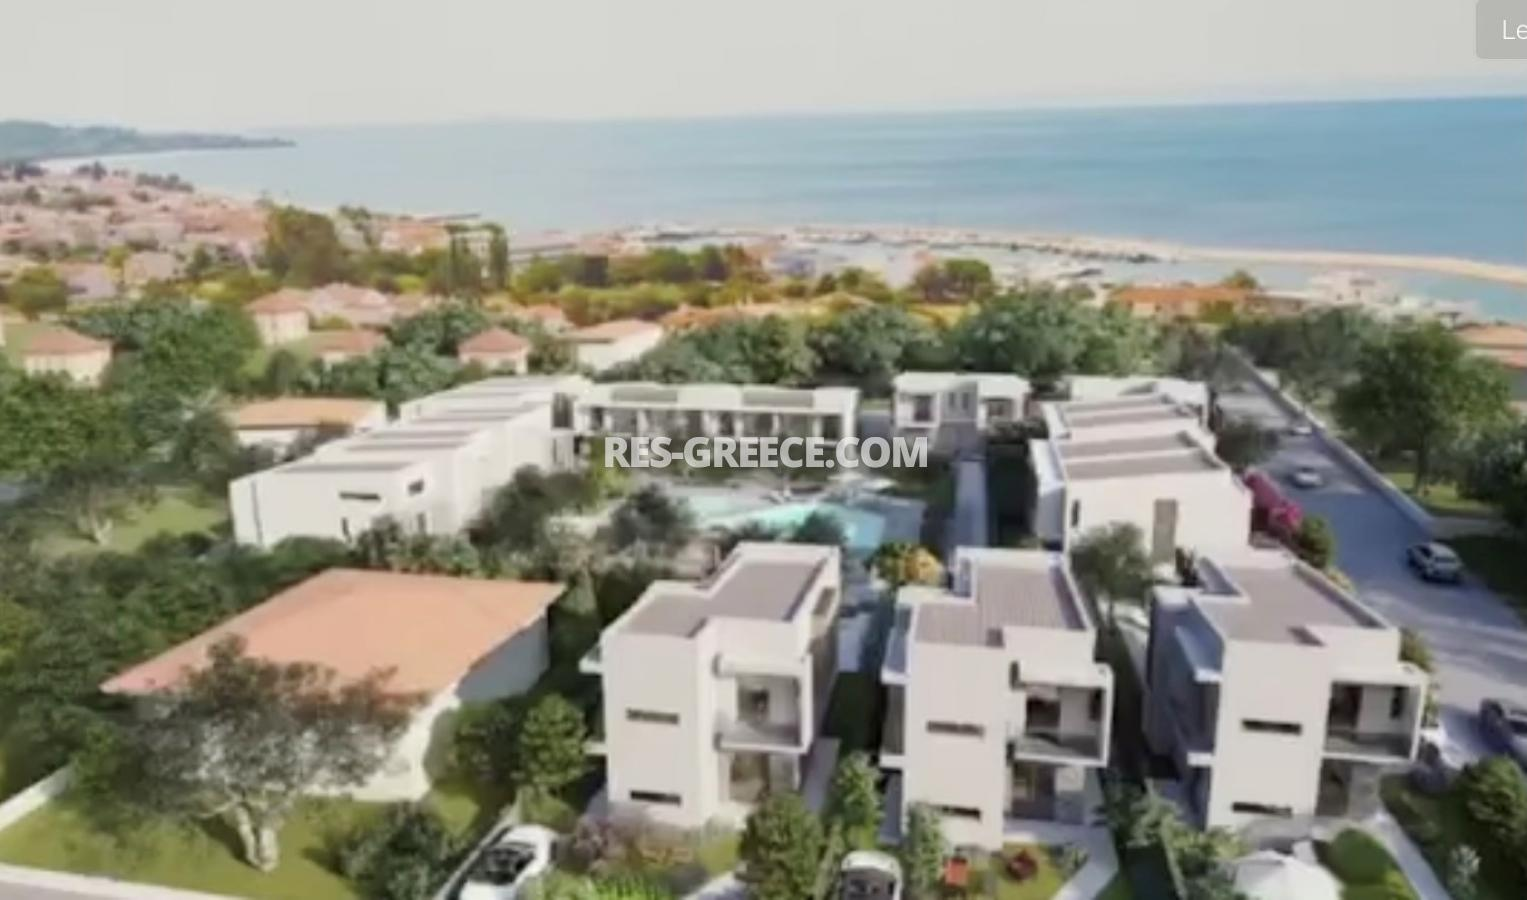 Anasa apartments, Halkidiki-Sithonia, Greece - apartments in a new complex with pool - Photo 14